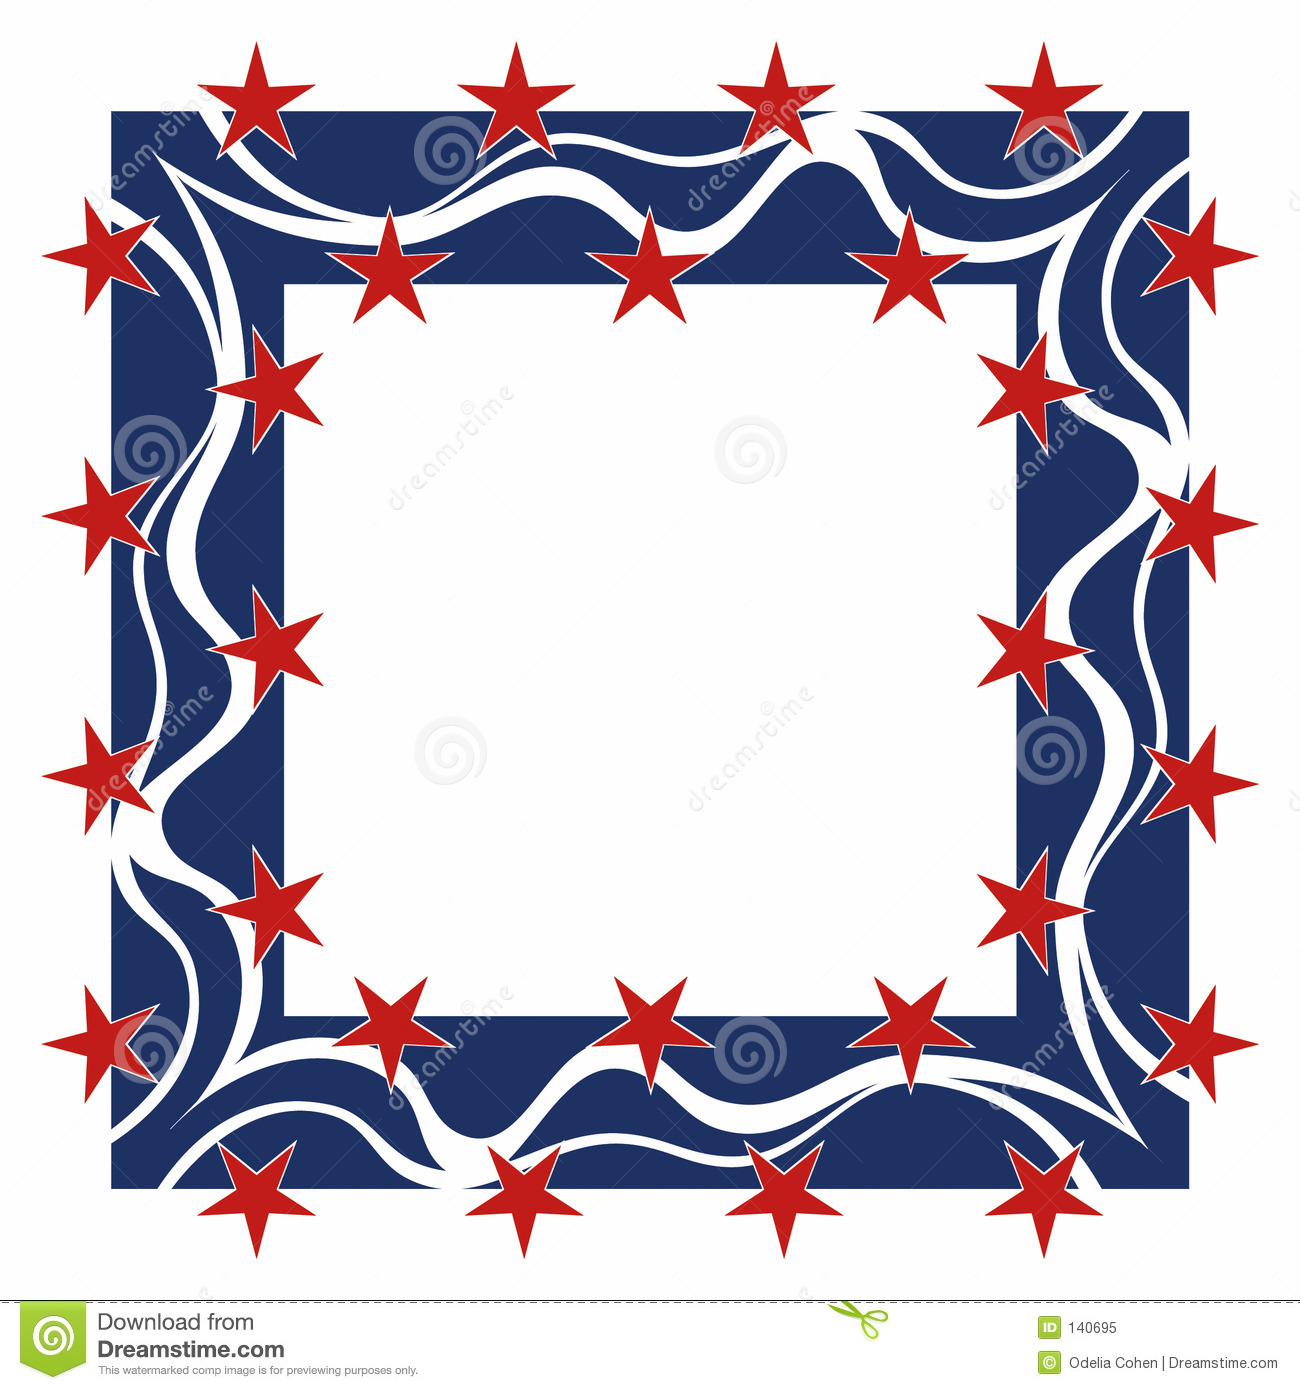 Patriotic Frame Royalty Free Stock Photography - Image: 141527